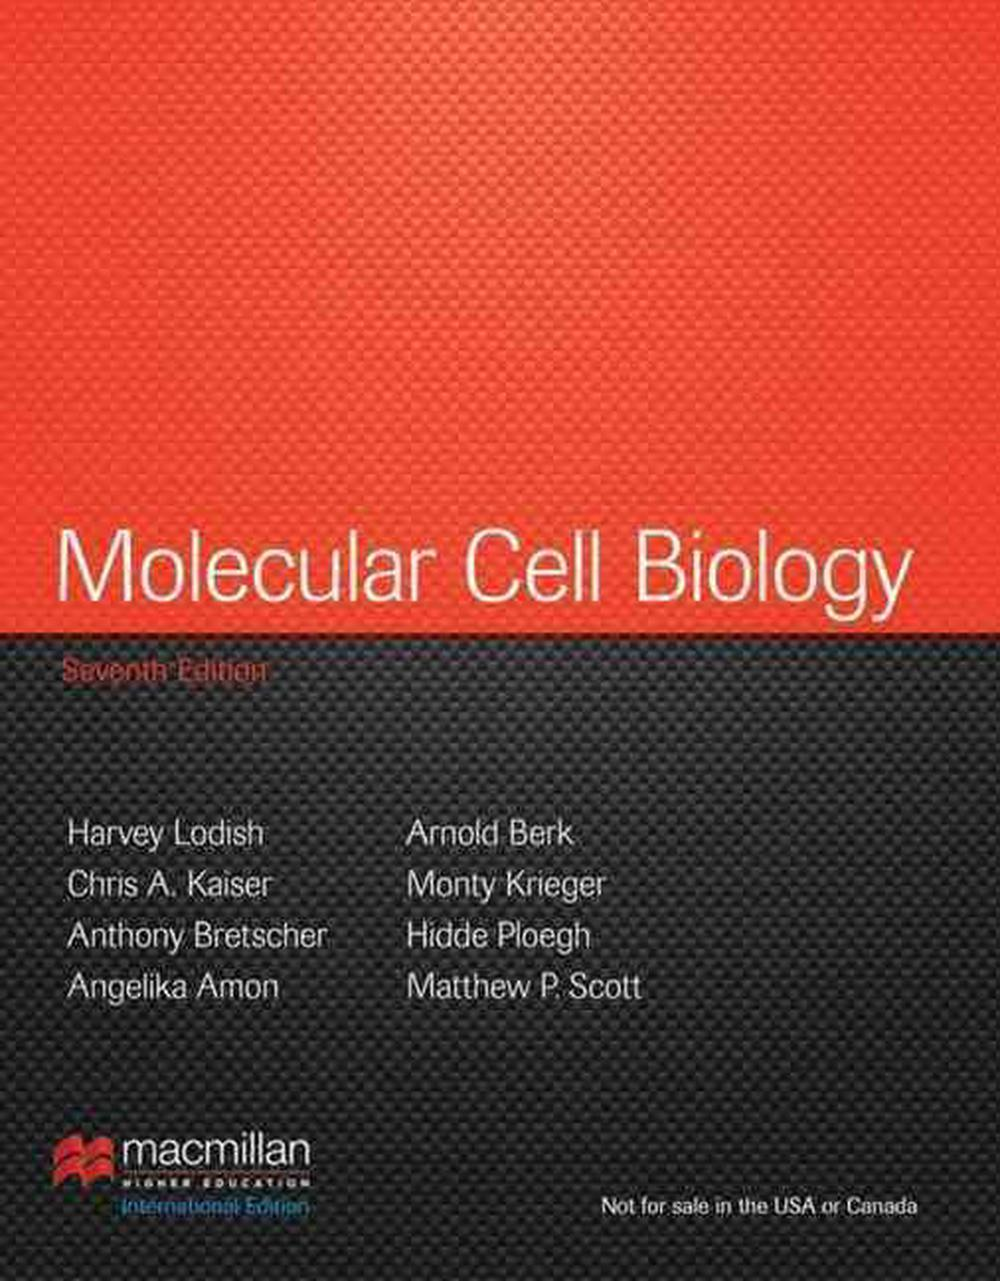 Biology - Molecular Cell Biology with Bioinnovation